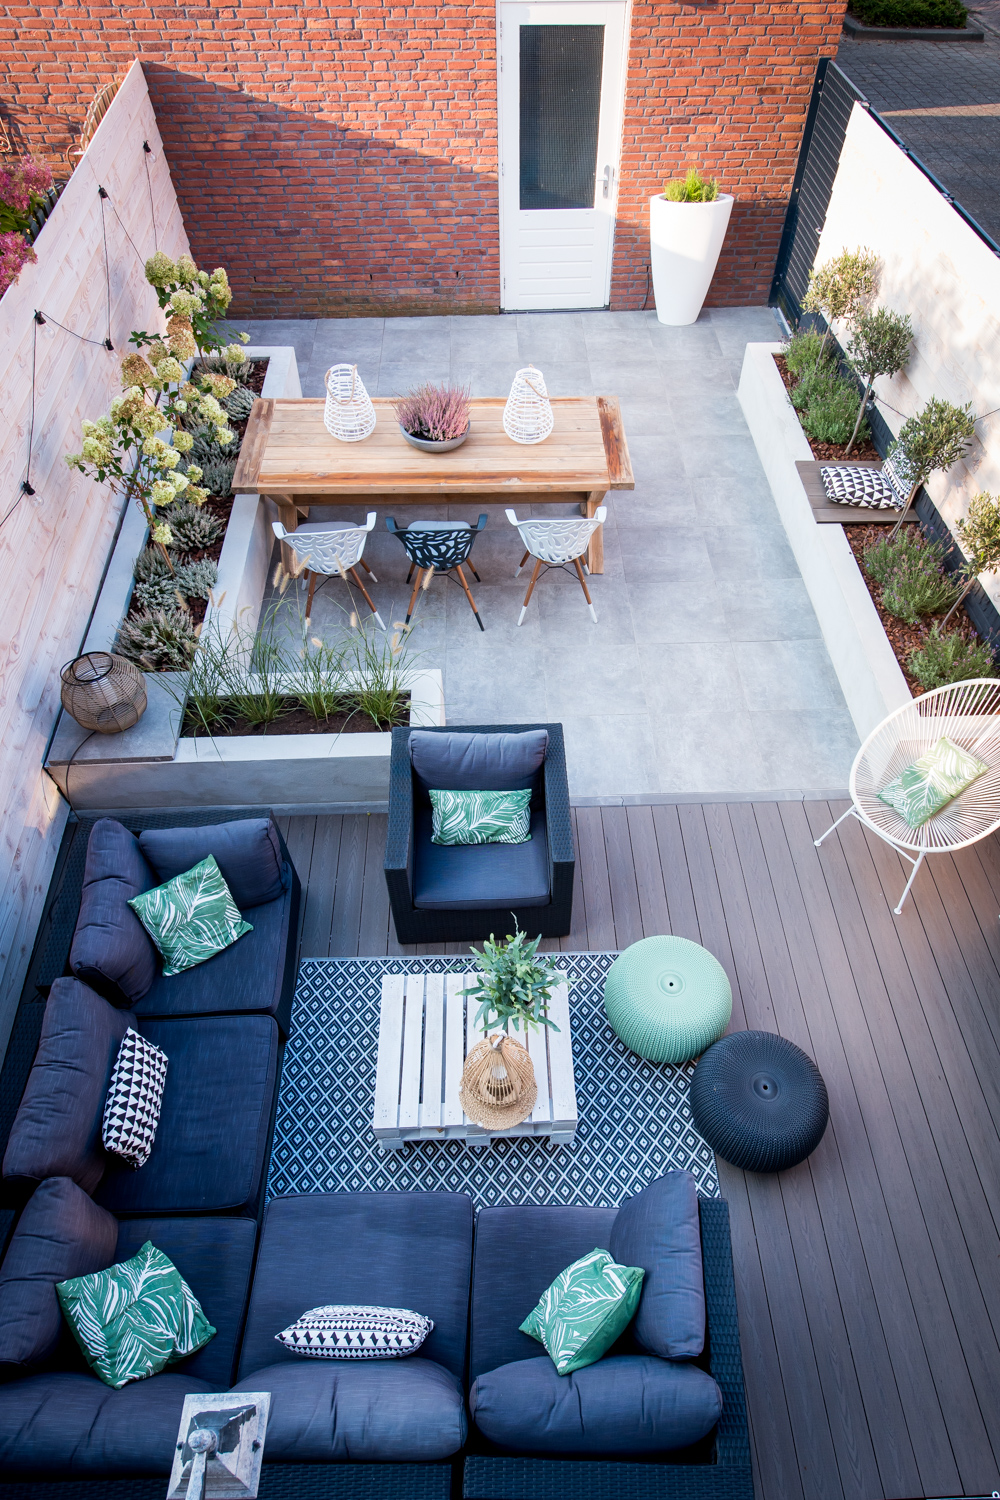 12 Stunning Small Patio Plans To Incorporate Even In The ... on My Patio Design  id=74050